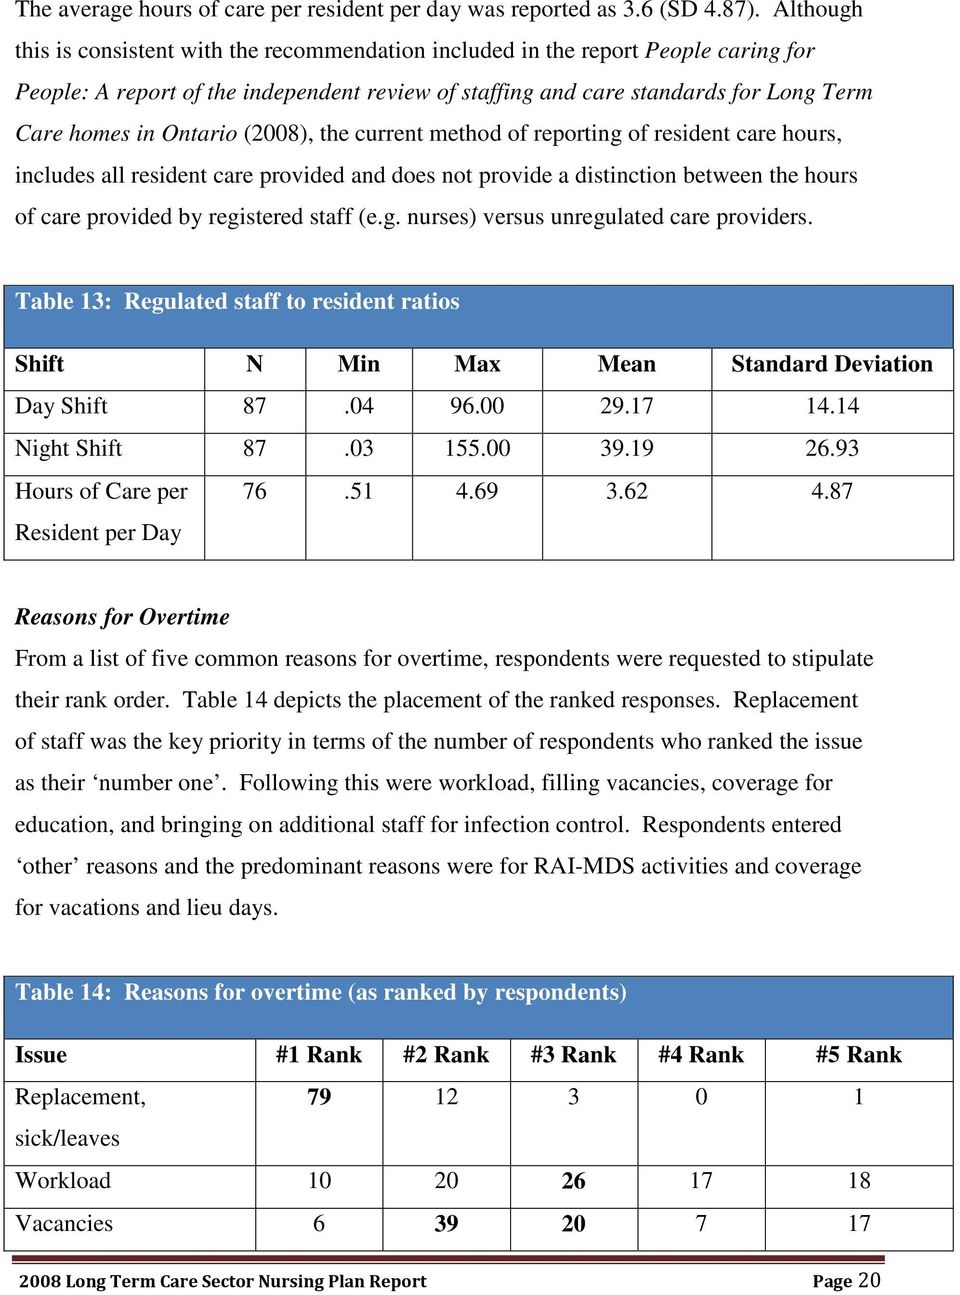 Ontario (2008), the current method of reporting of resident care hours, includes all resident care provided and does not provide a distinction between the hours of care provided by registered staff